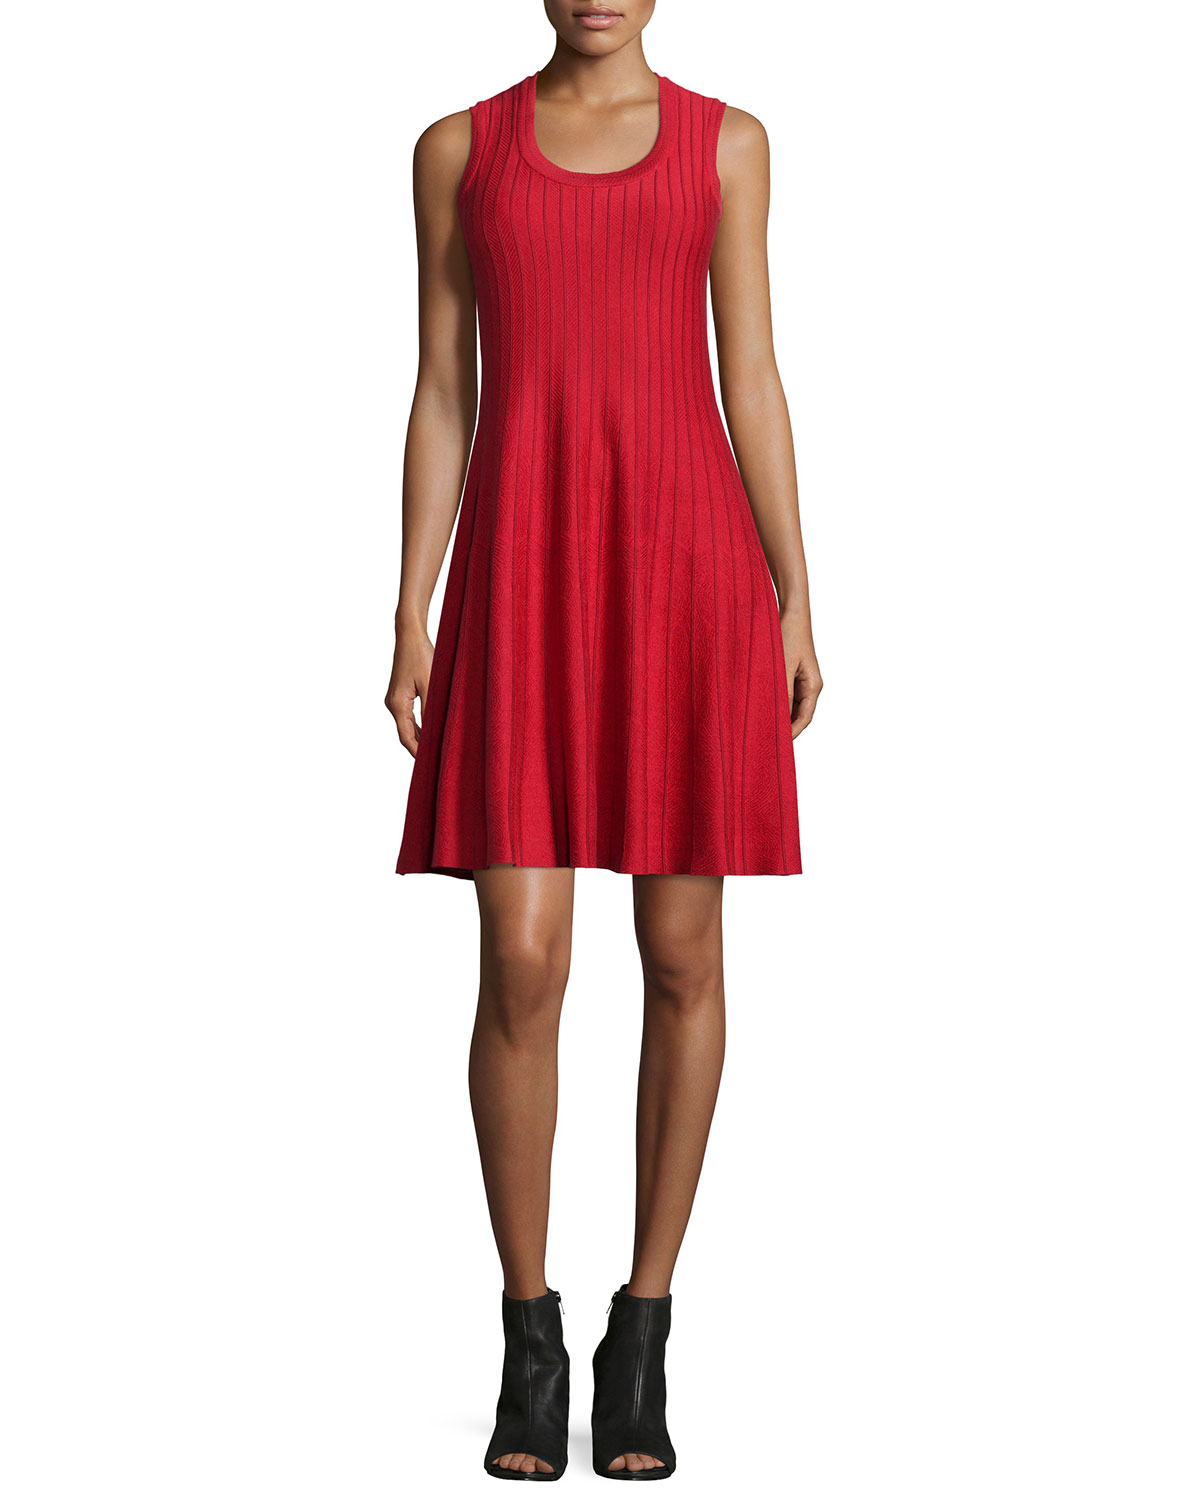 Twirl Sleeveless Knit Dress, Red, Plus Size